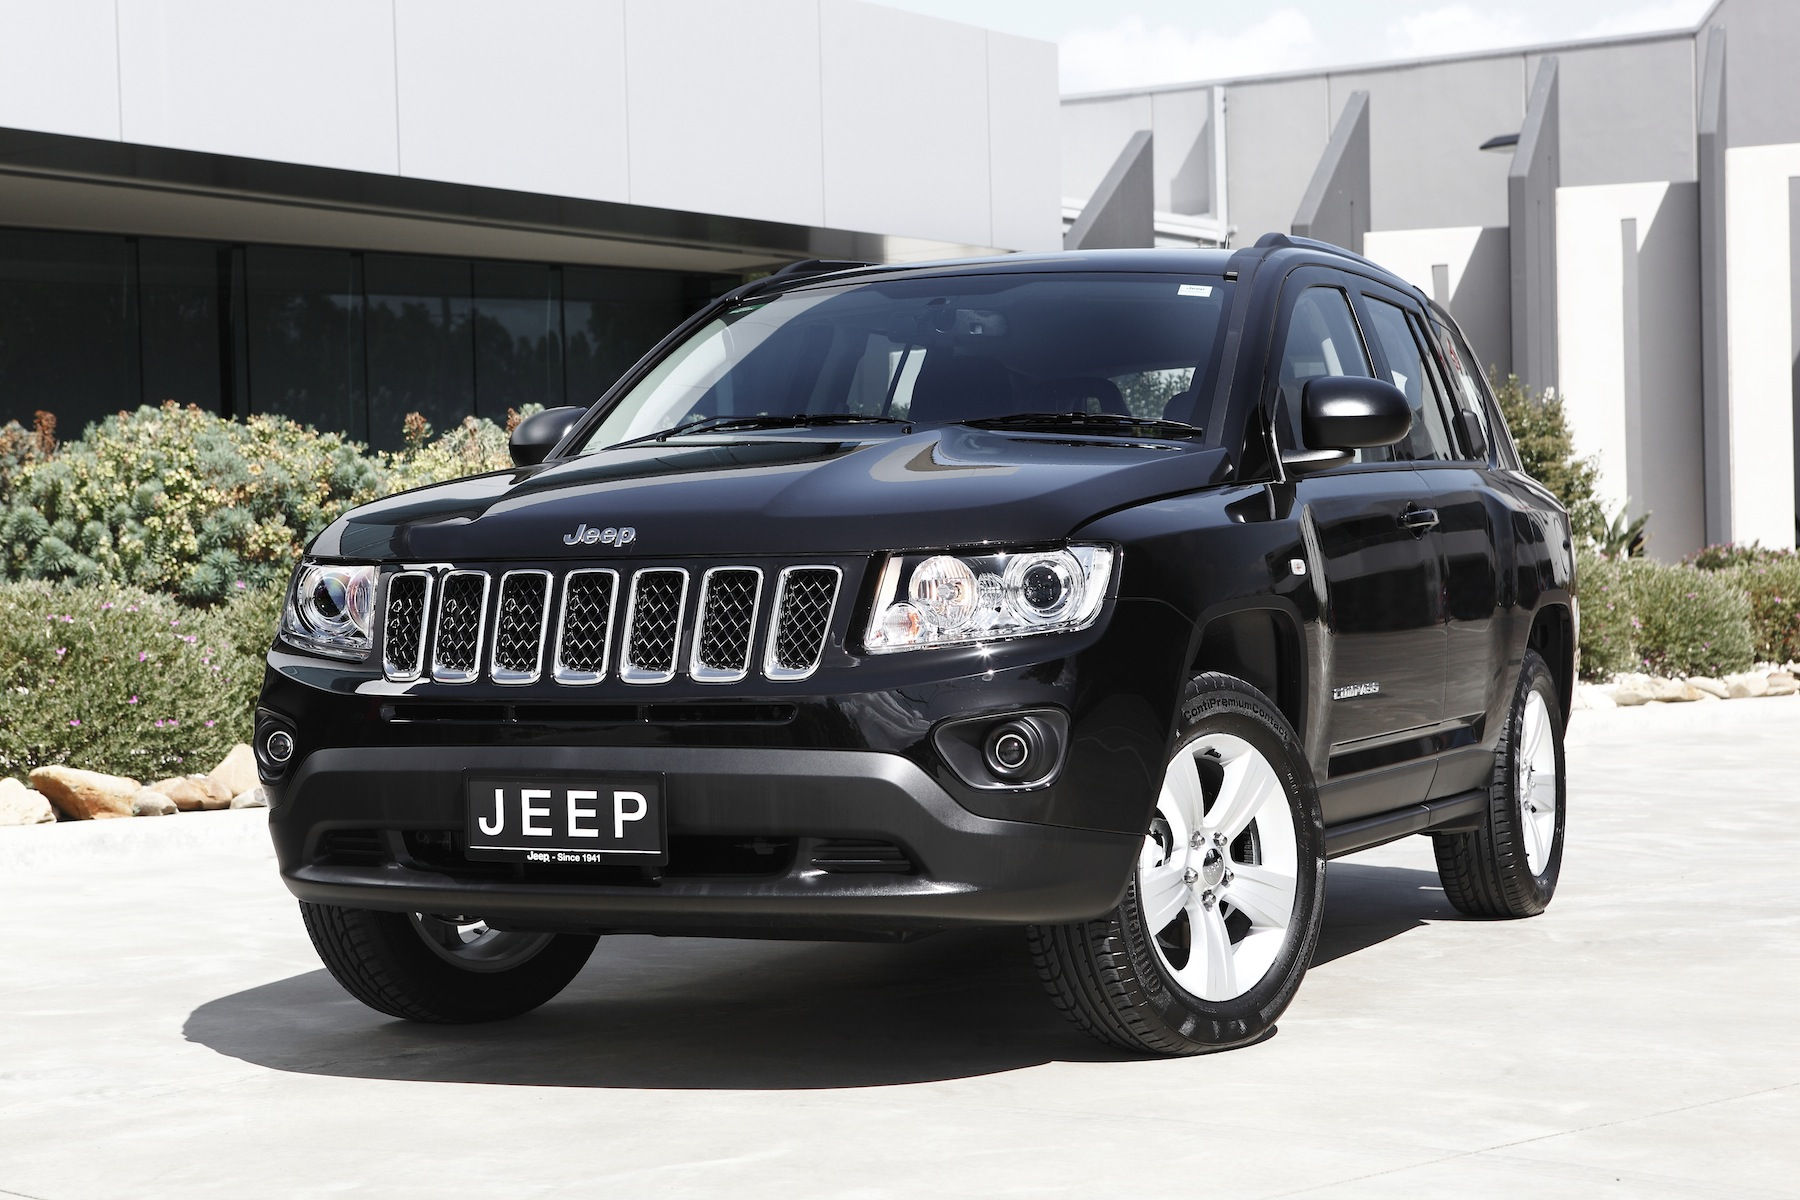 Wiring Diagram For 2012 Jeep Compass Library Diagrams Pictures Of 3